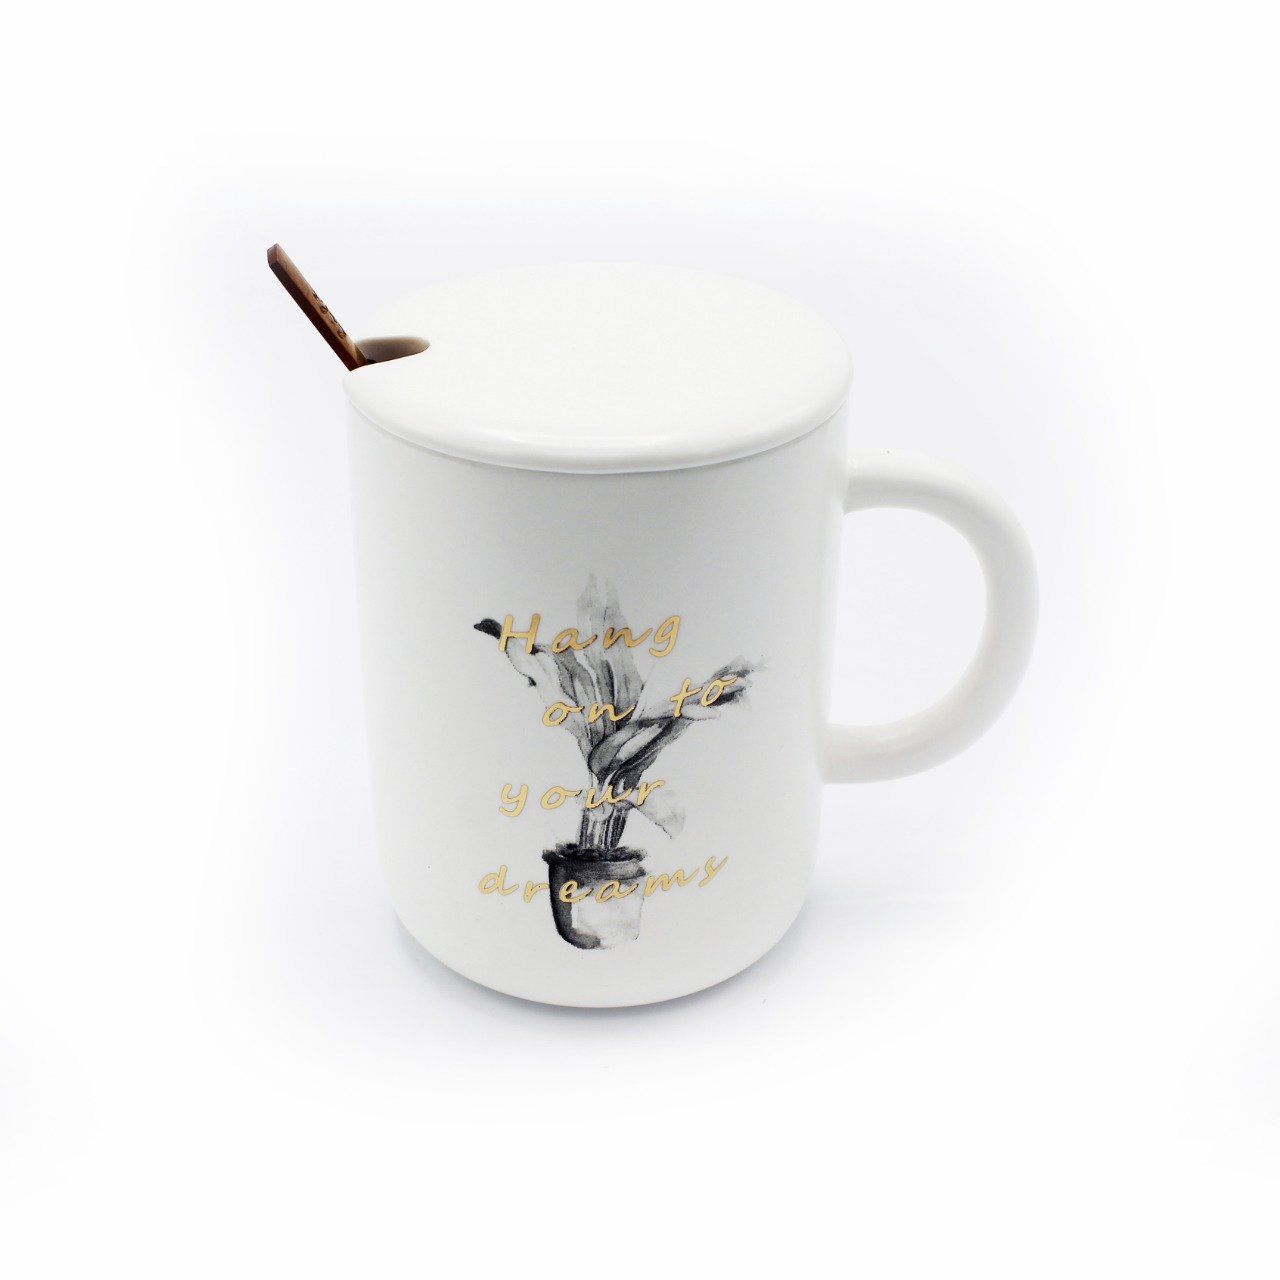 Exquisite Mug - Hang onto your dreams